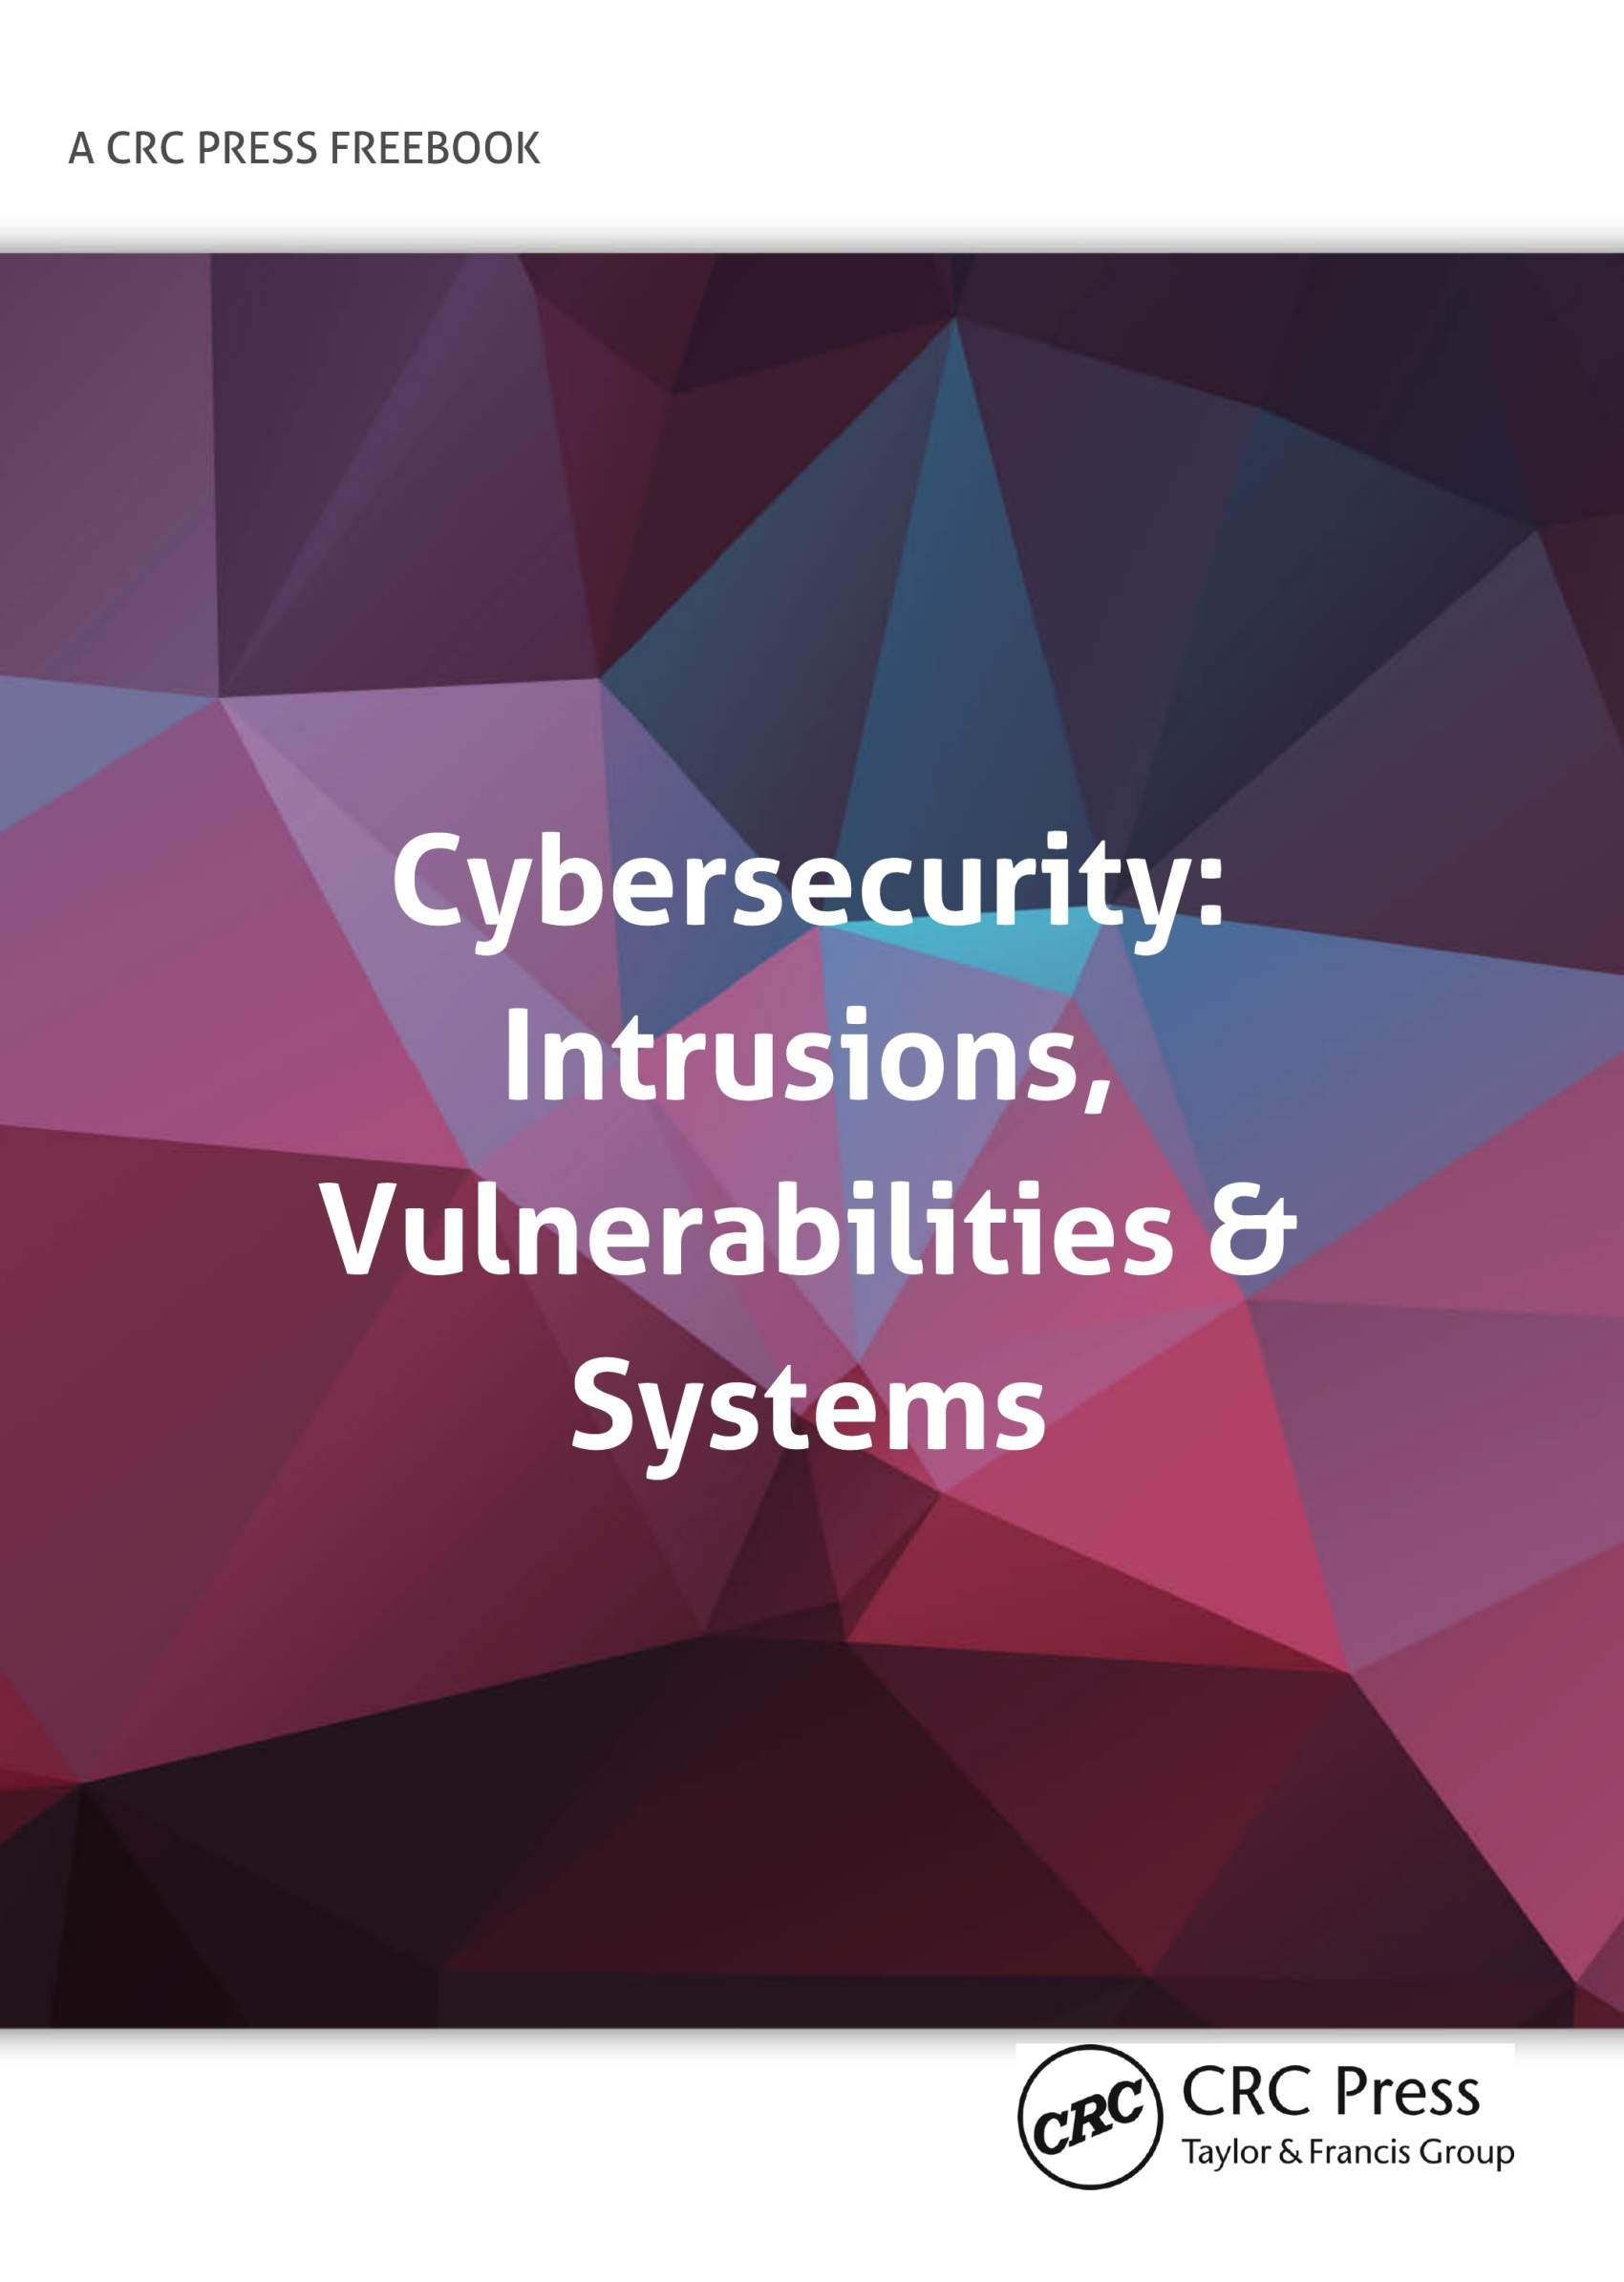 FreeBook: Cybersecurity: Intrusions, Vulnerabilities & Systems